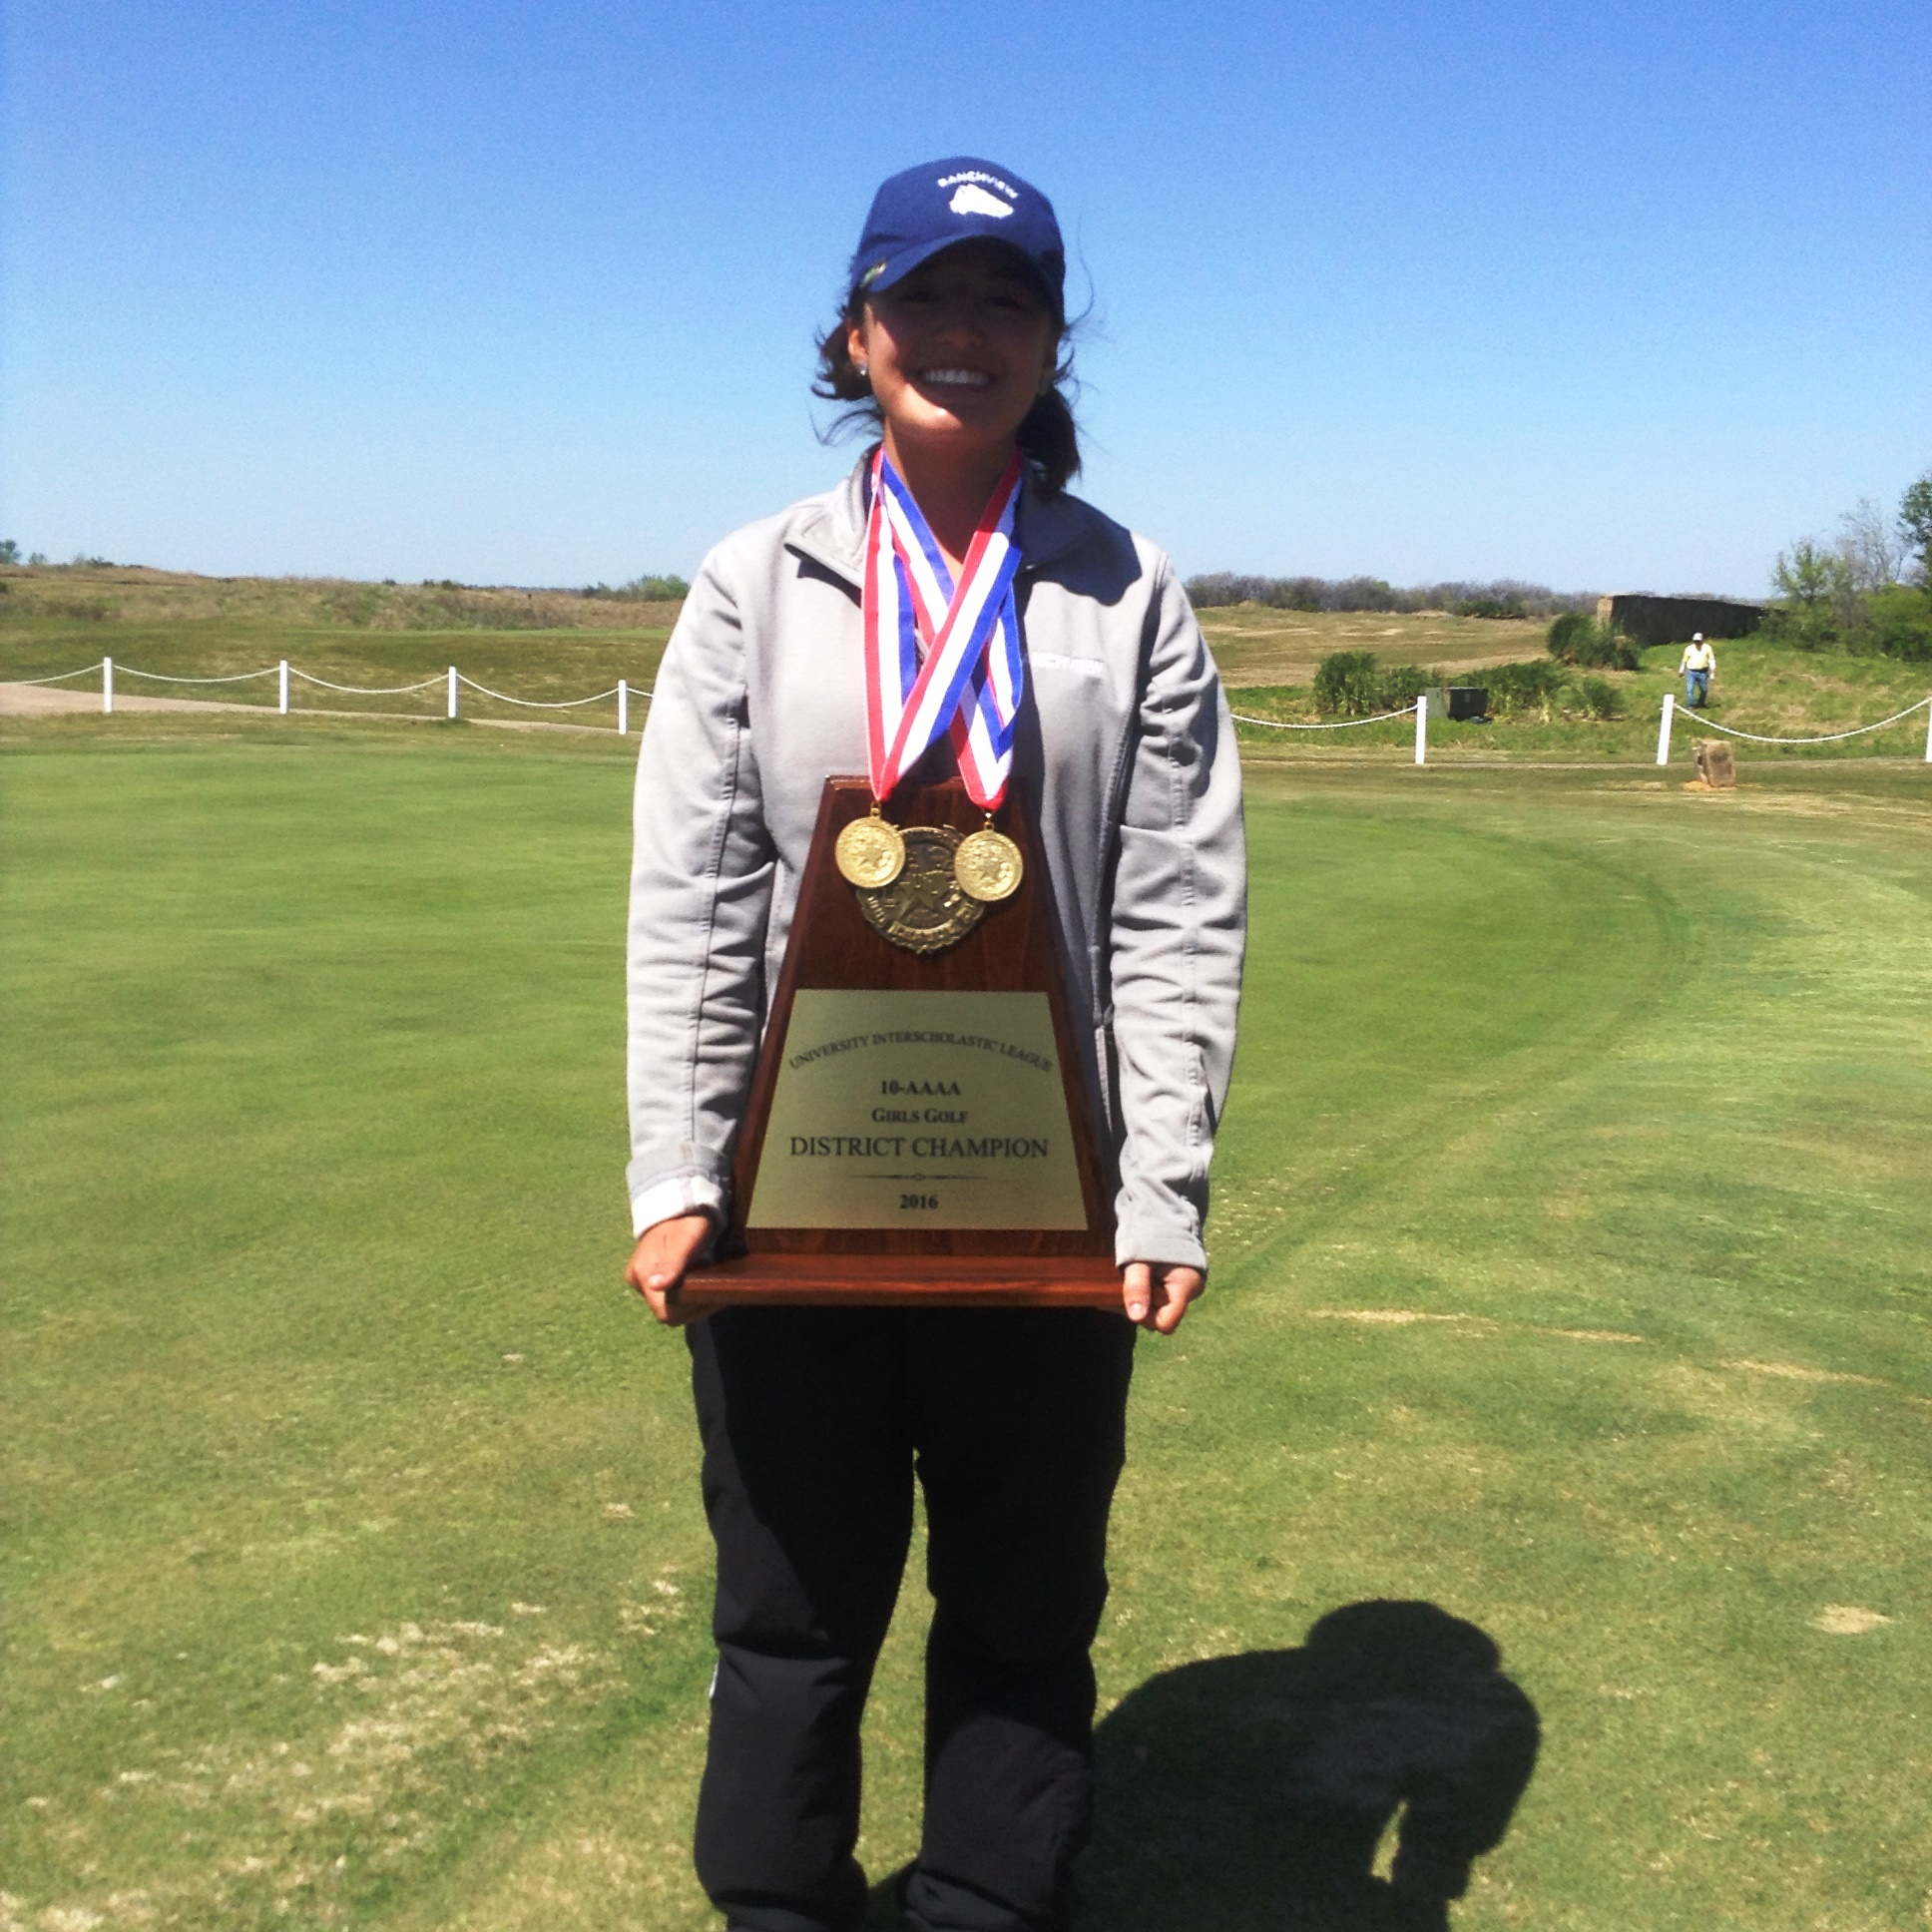 Ranchview High School District Girls' Golf Tournament Winner, Ava Castillo